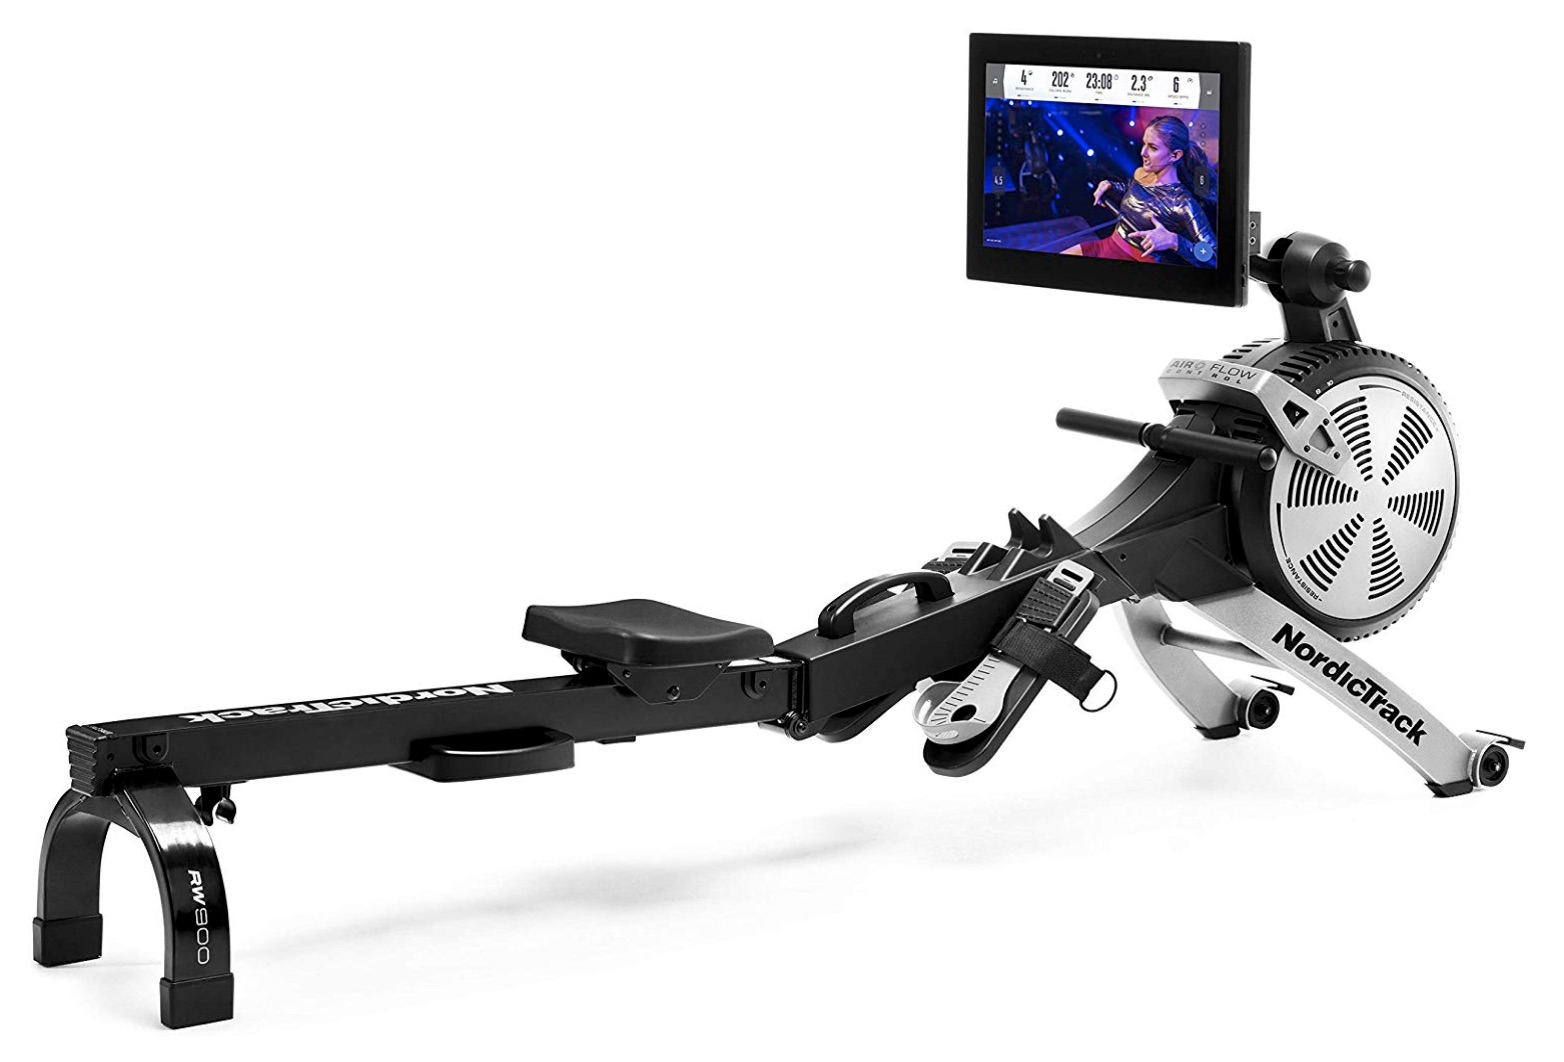 NordicTrack RW900 Rower Review • Rowing Machine King